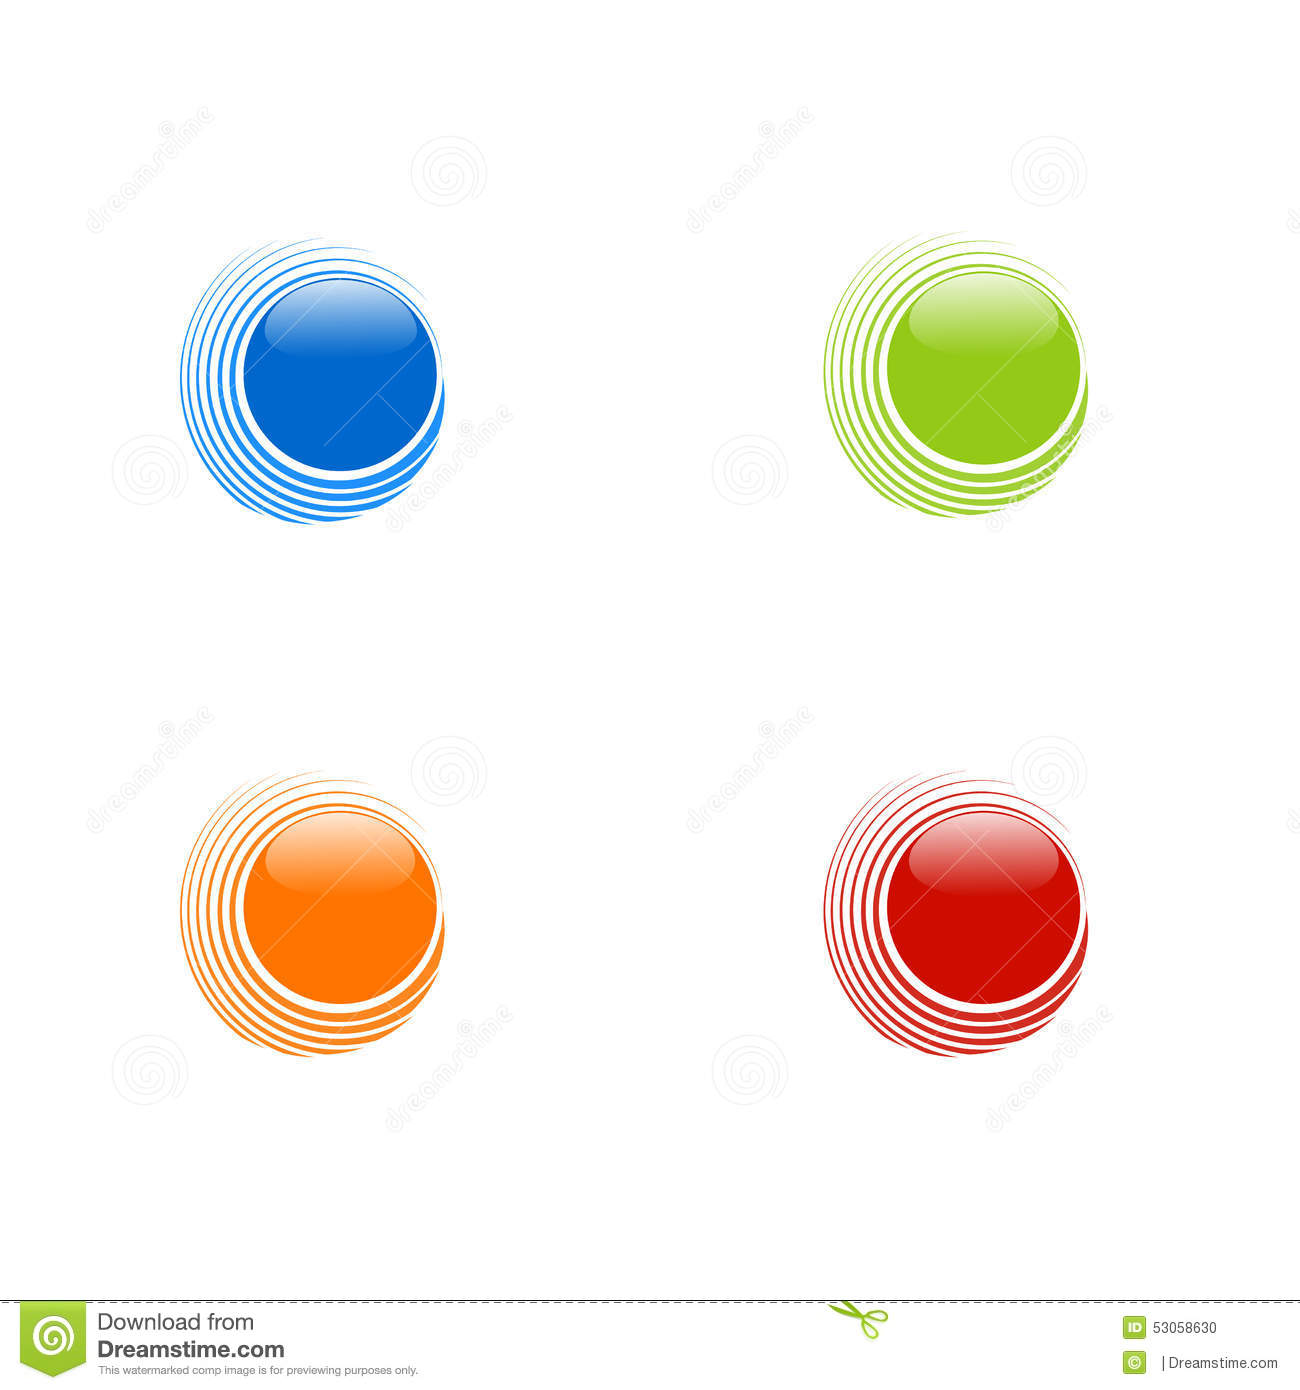 How To Make A Circle Icon In Paint Net